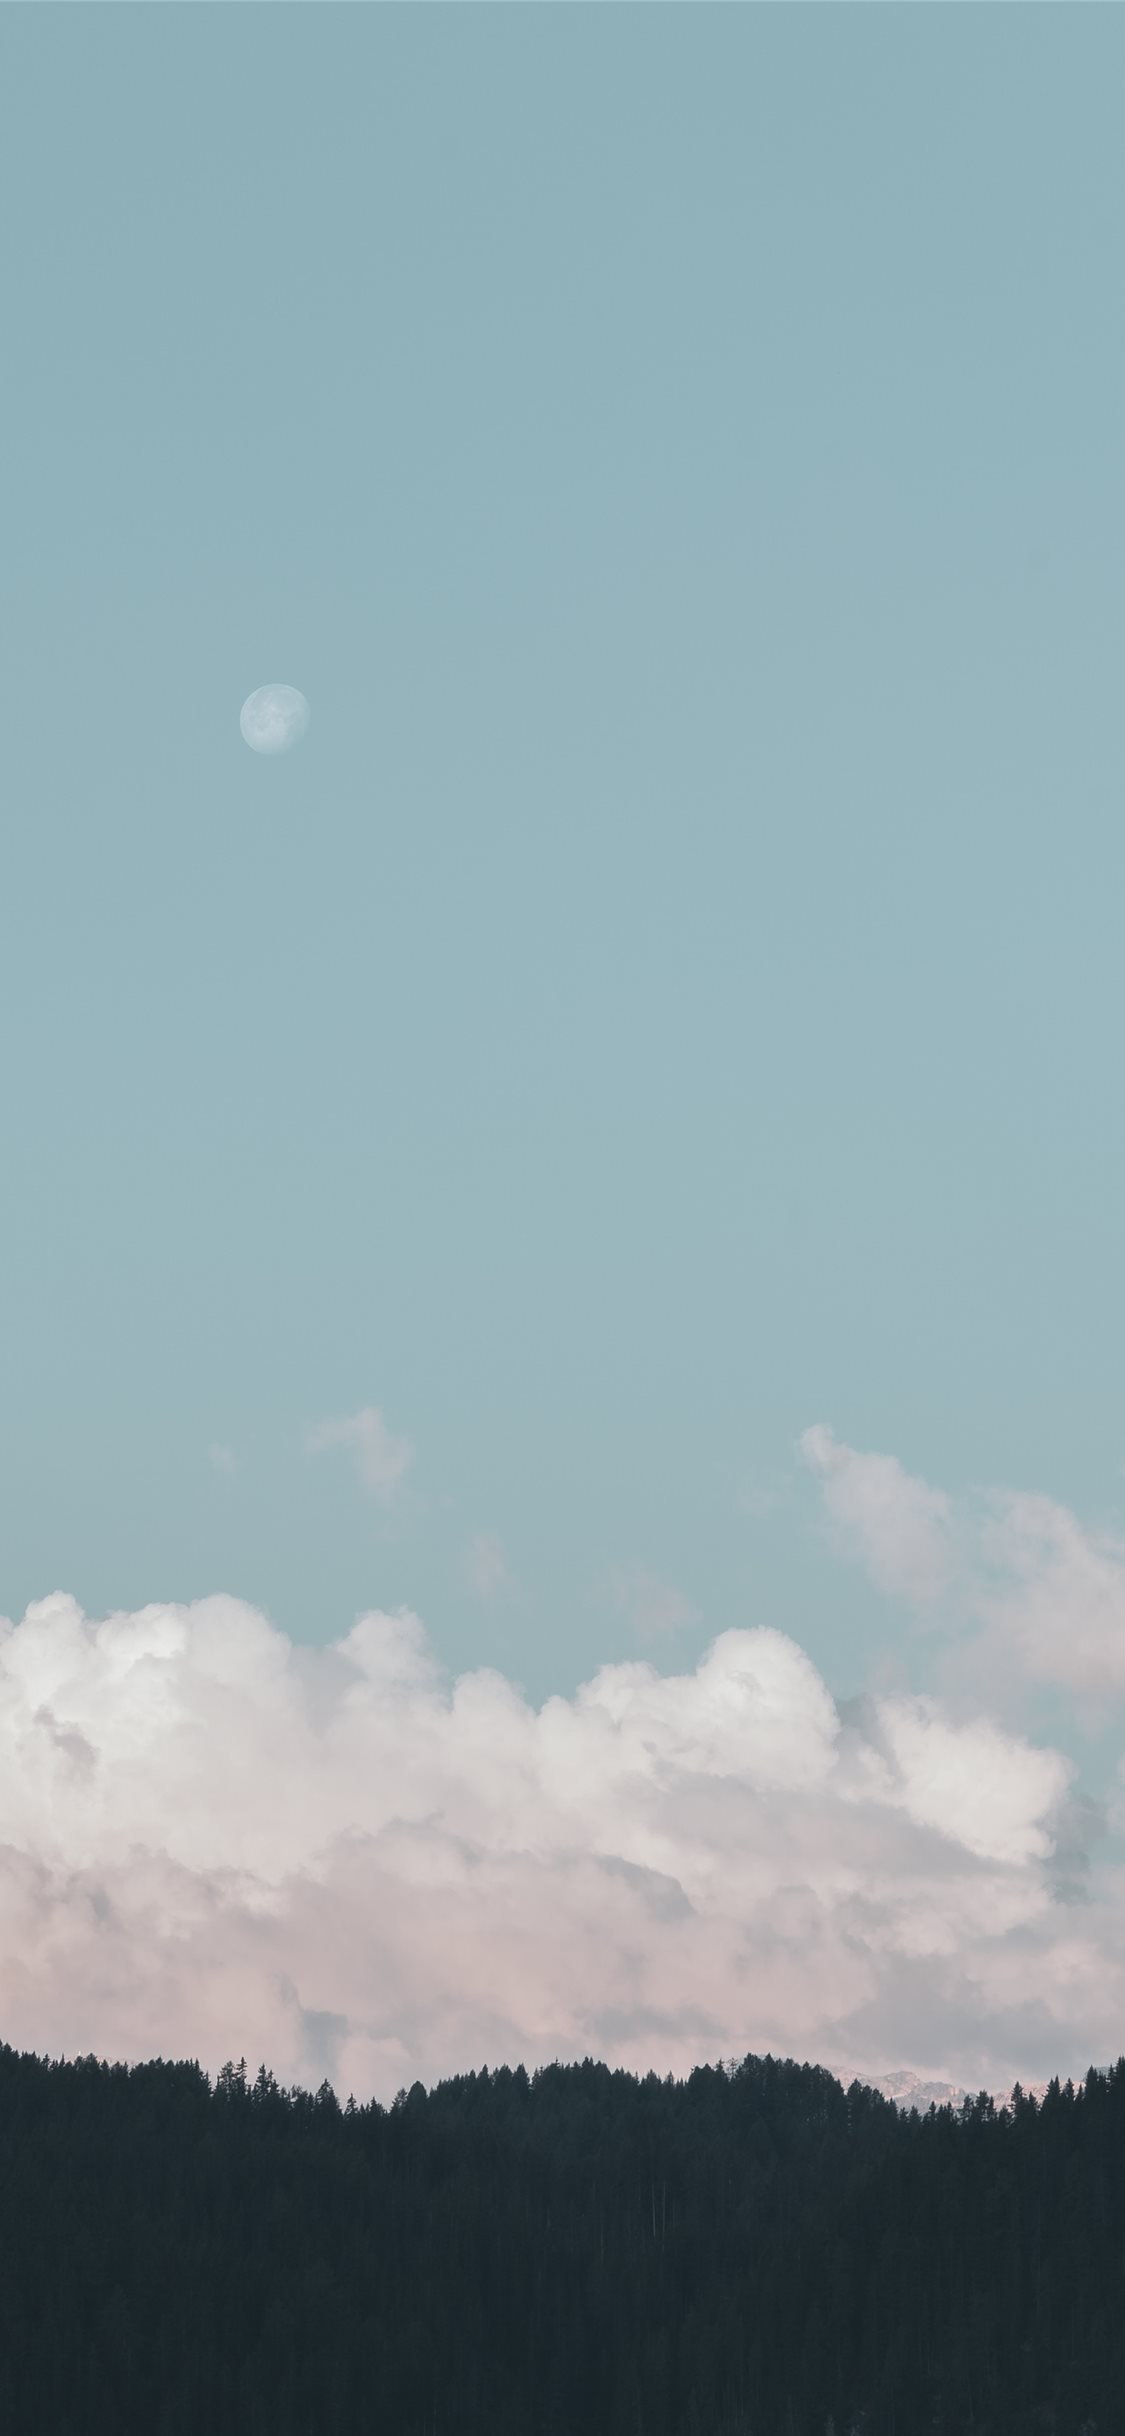 Pastel Clouds Iphone 8 Wallpaper Clouds Wallpaper Iphone X 39502 Hd Wallpaper Backgrounds Download